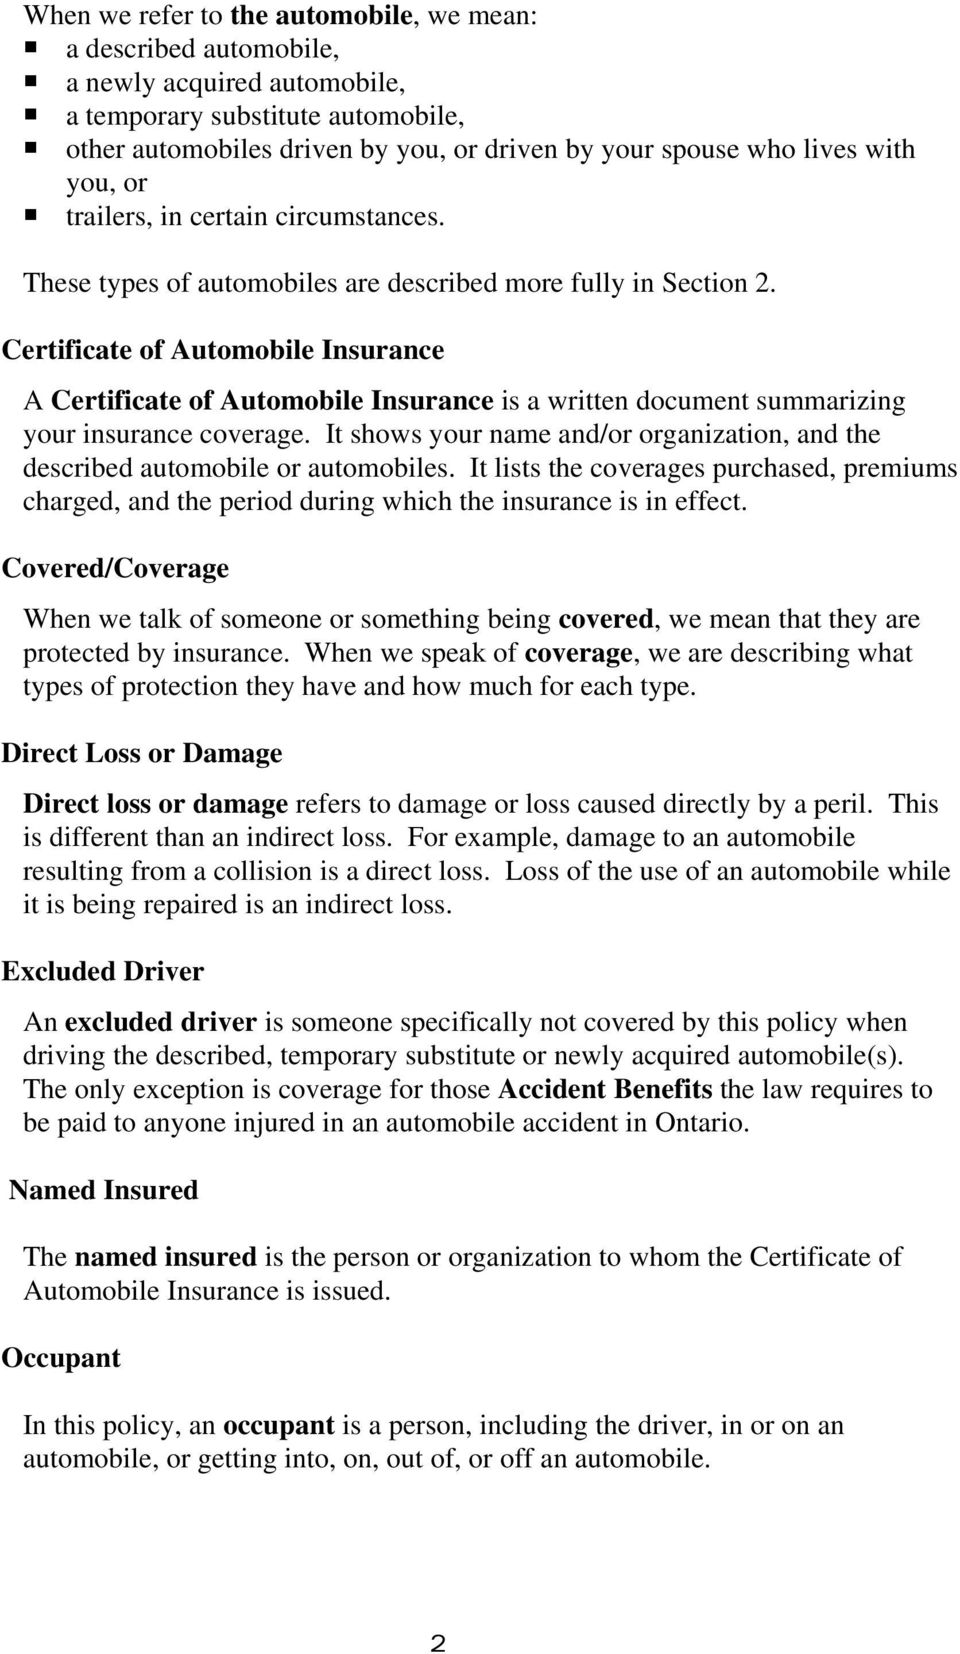 Certificate of Automobile Insurance A Certificate of Automobile Insurance is a written document summarizing your insurance coverage.